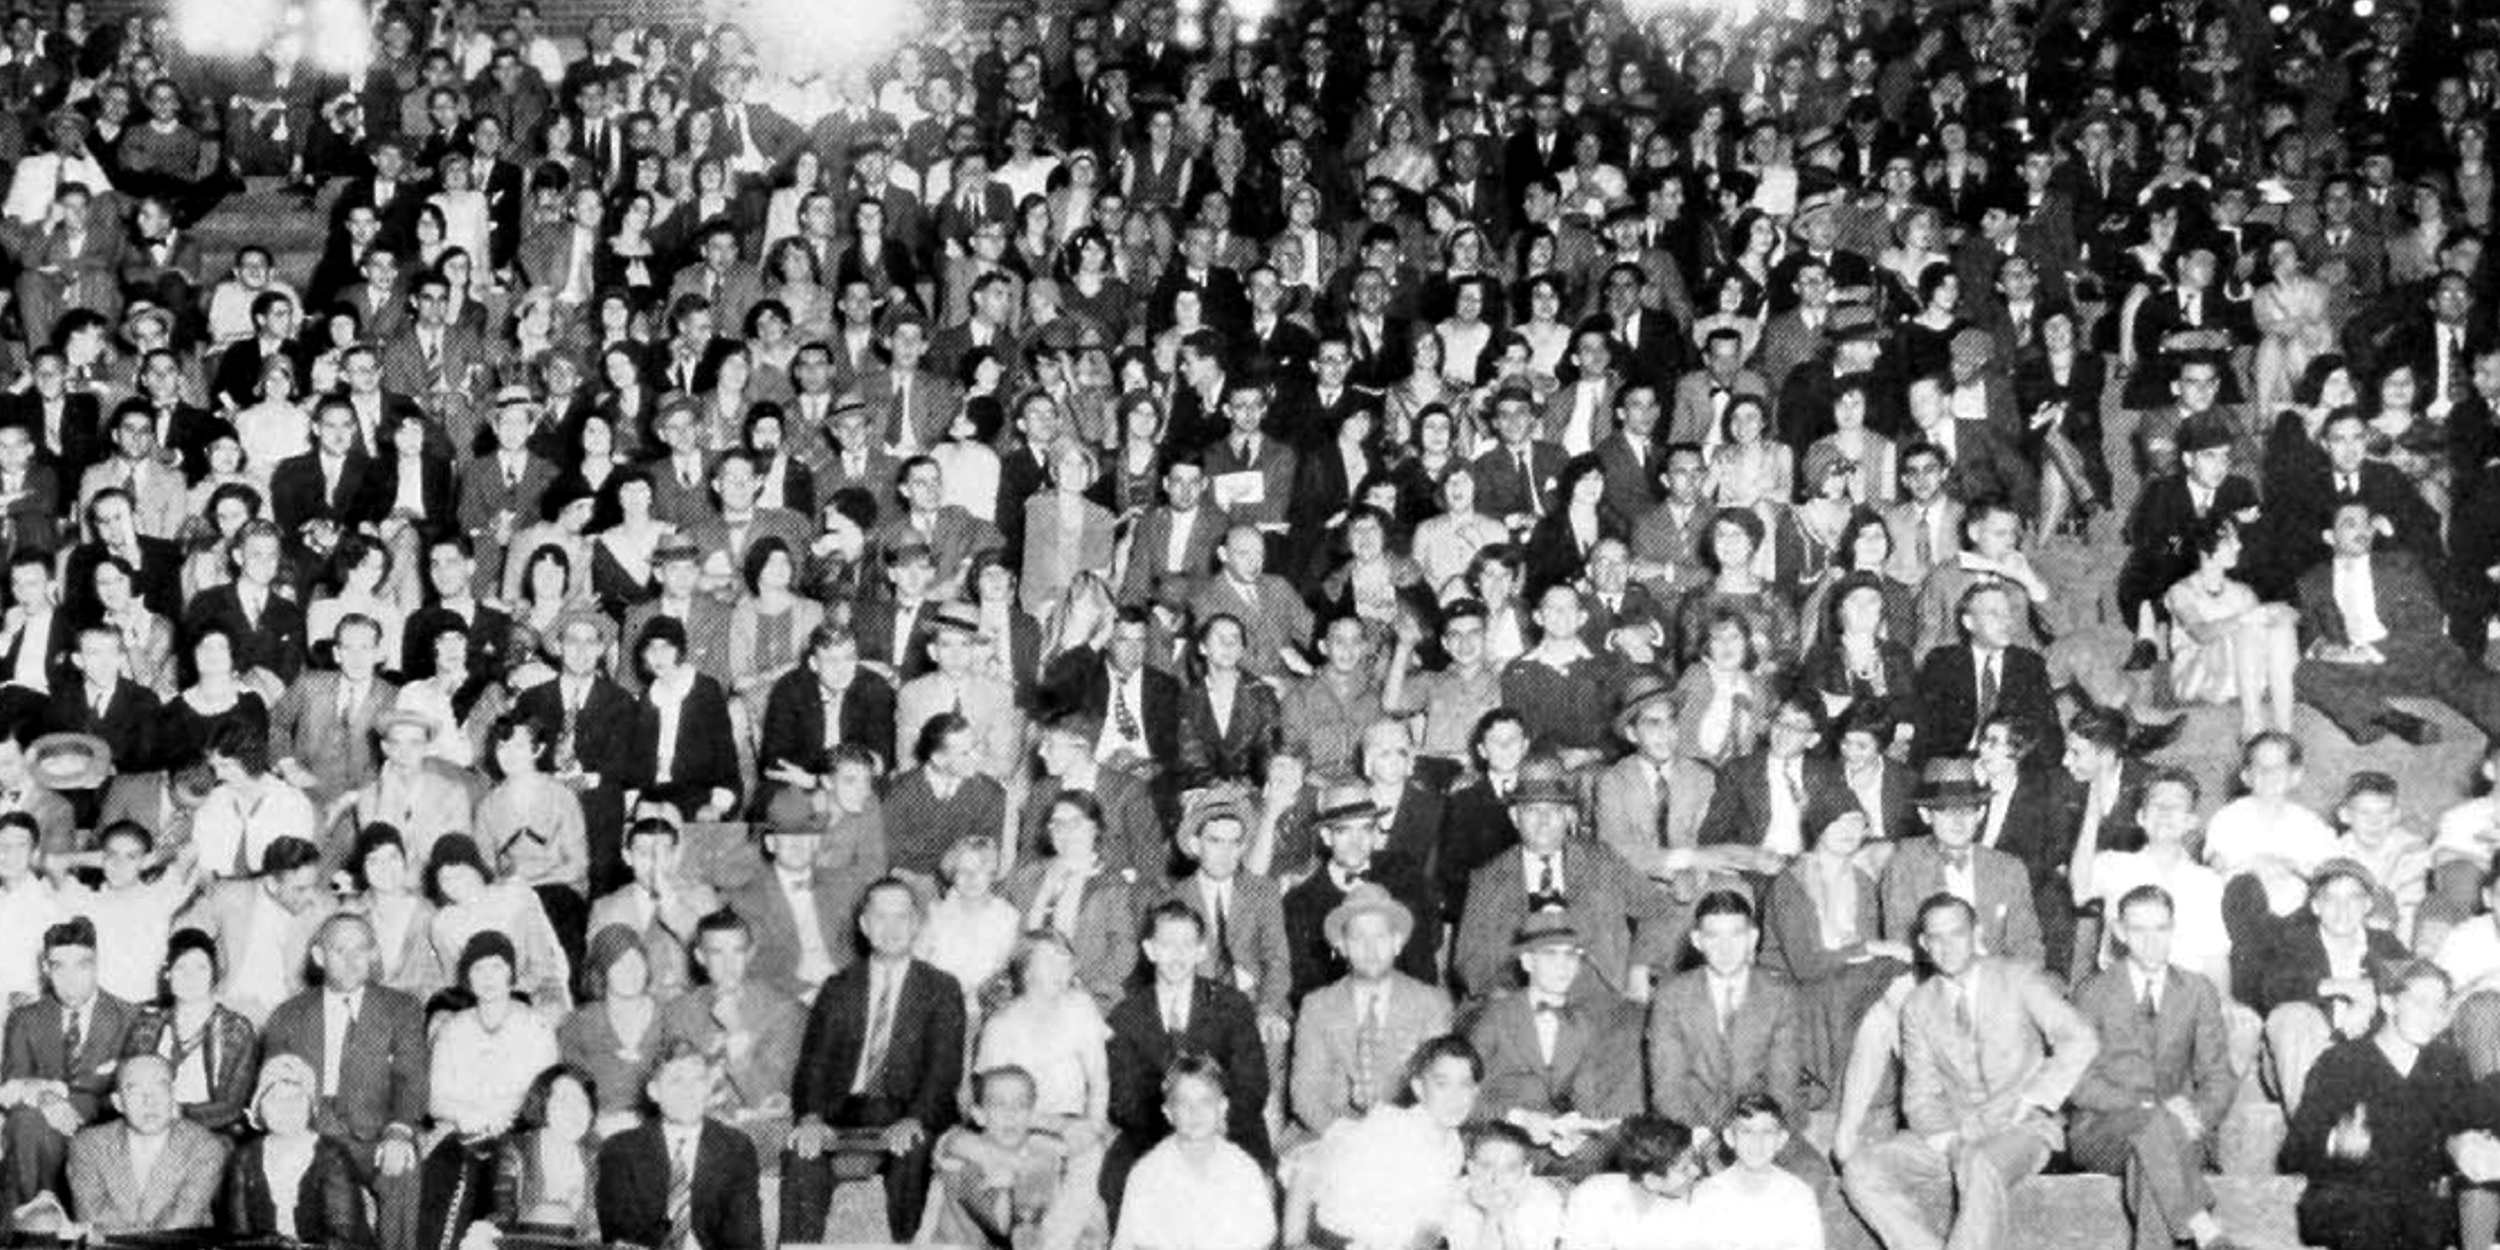 Fans fill the stands for the September 27,1930 night game against Cedarville. The Bearcats won 46-0. (UC Libraries via uc.edu)